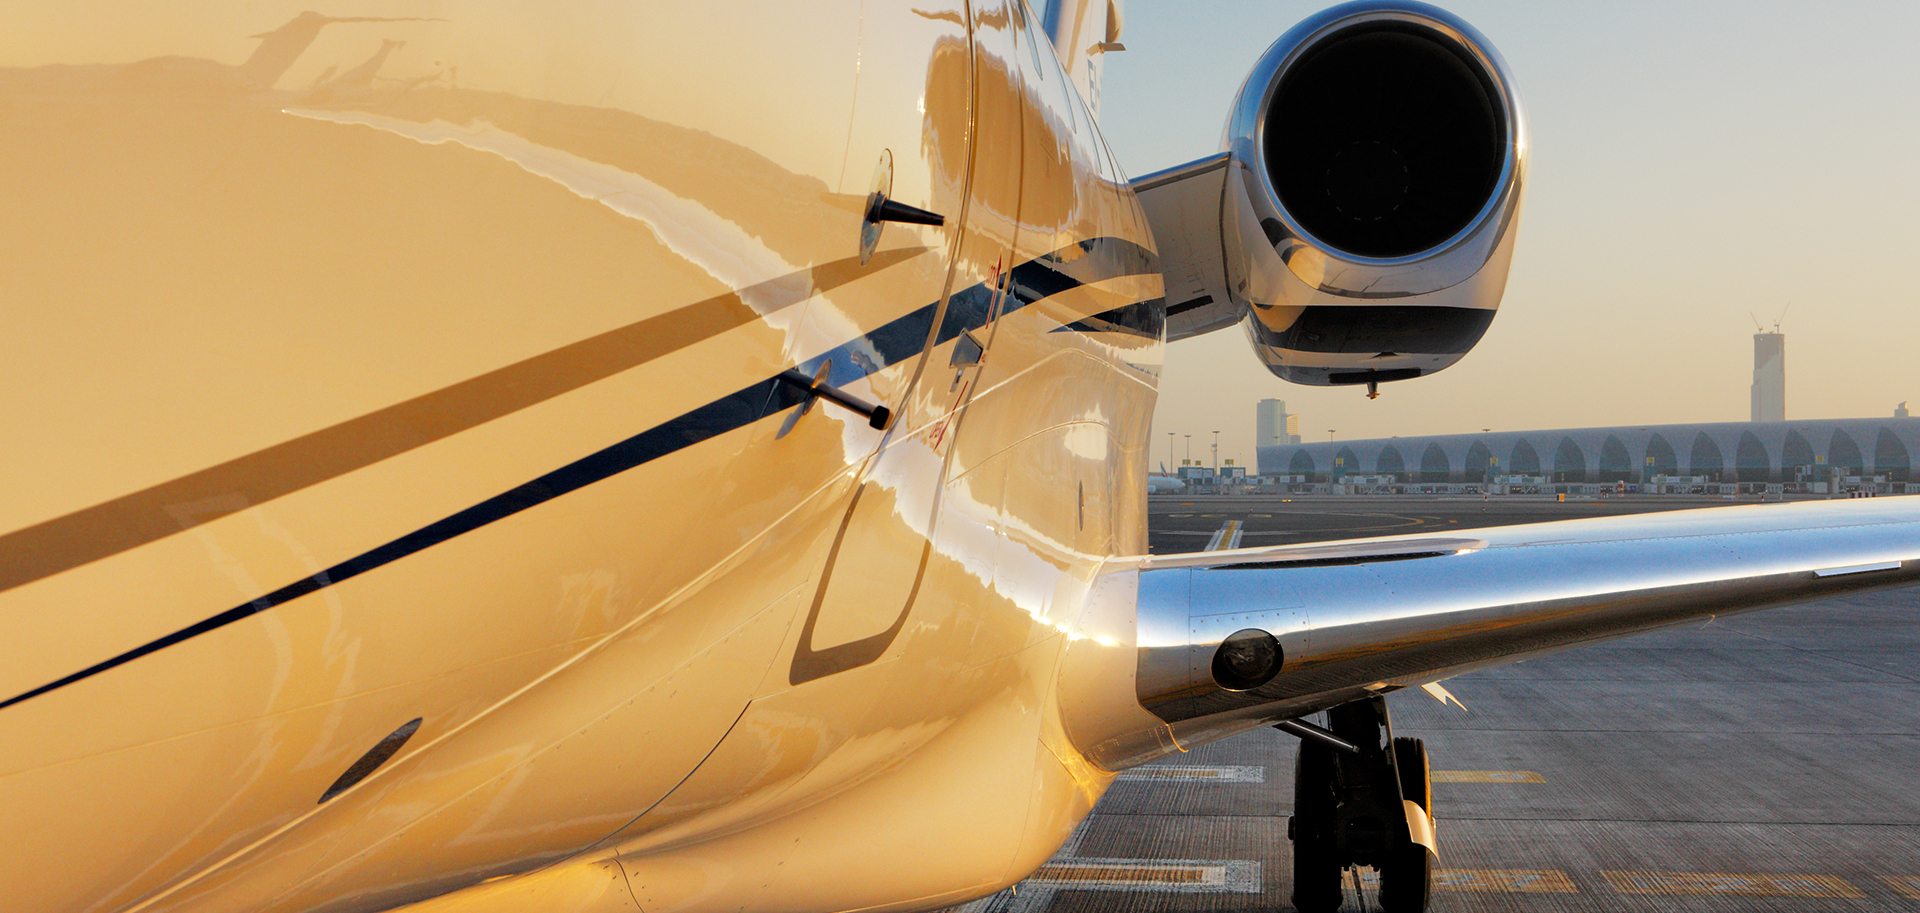 professional aircraft cleaners